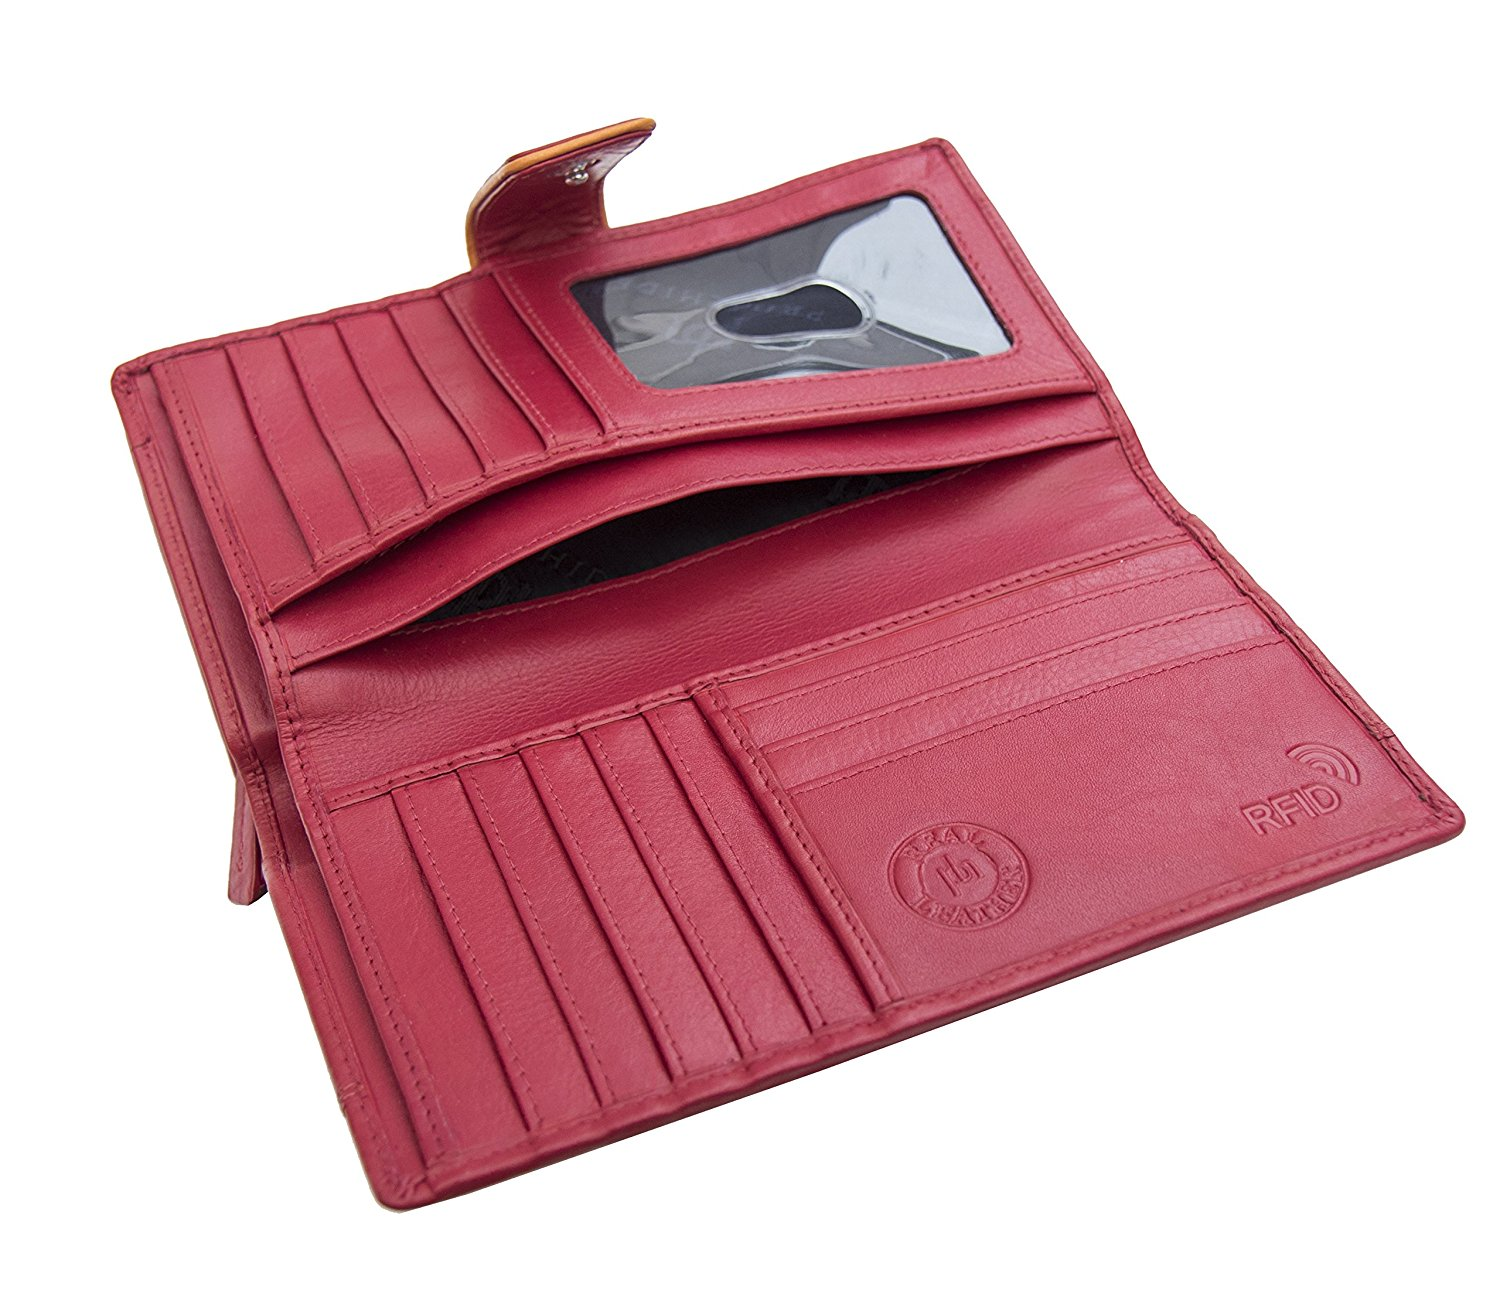 Femmes-Extra-Large-en-Cuir-Veritable-RFID-Bloquant-Organisateur-Clutch-Wallet-purse miniature 22